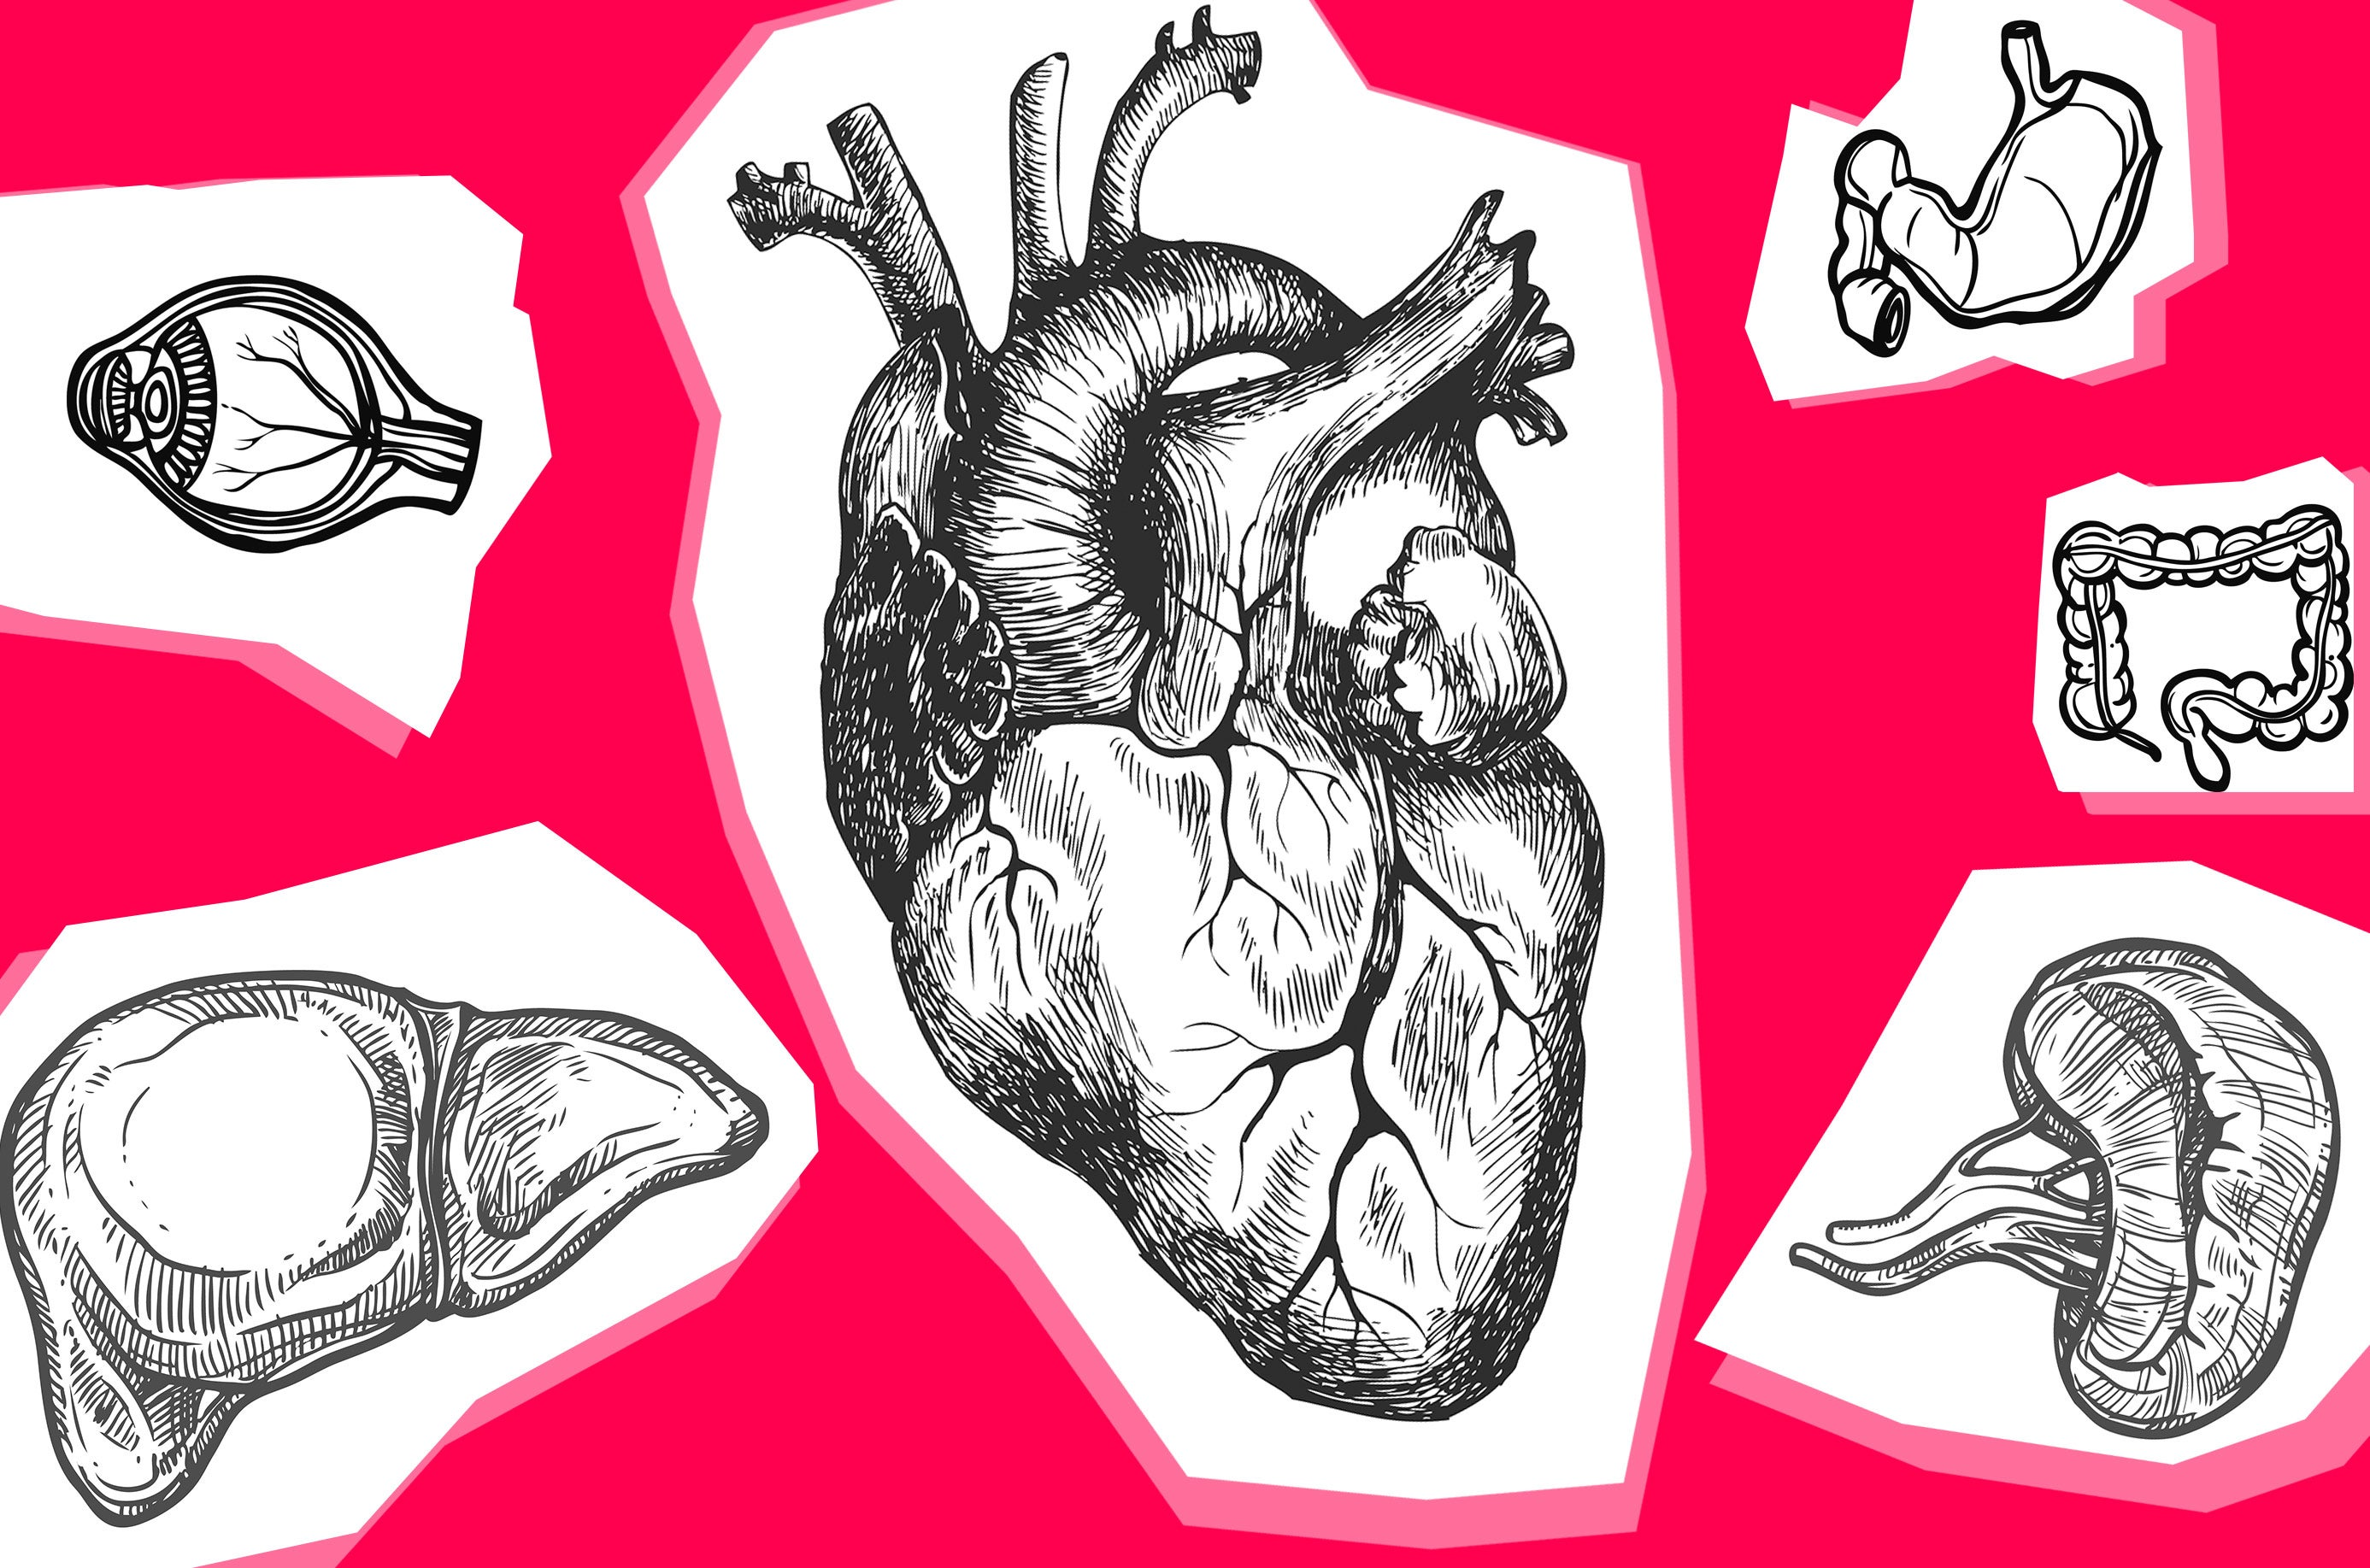 Illustrations of various organs, including a heart, eye, and stomach.